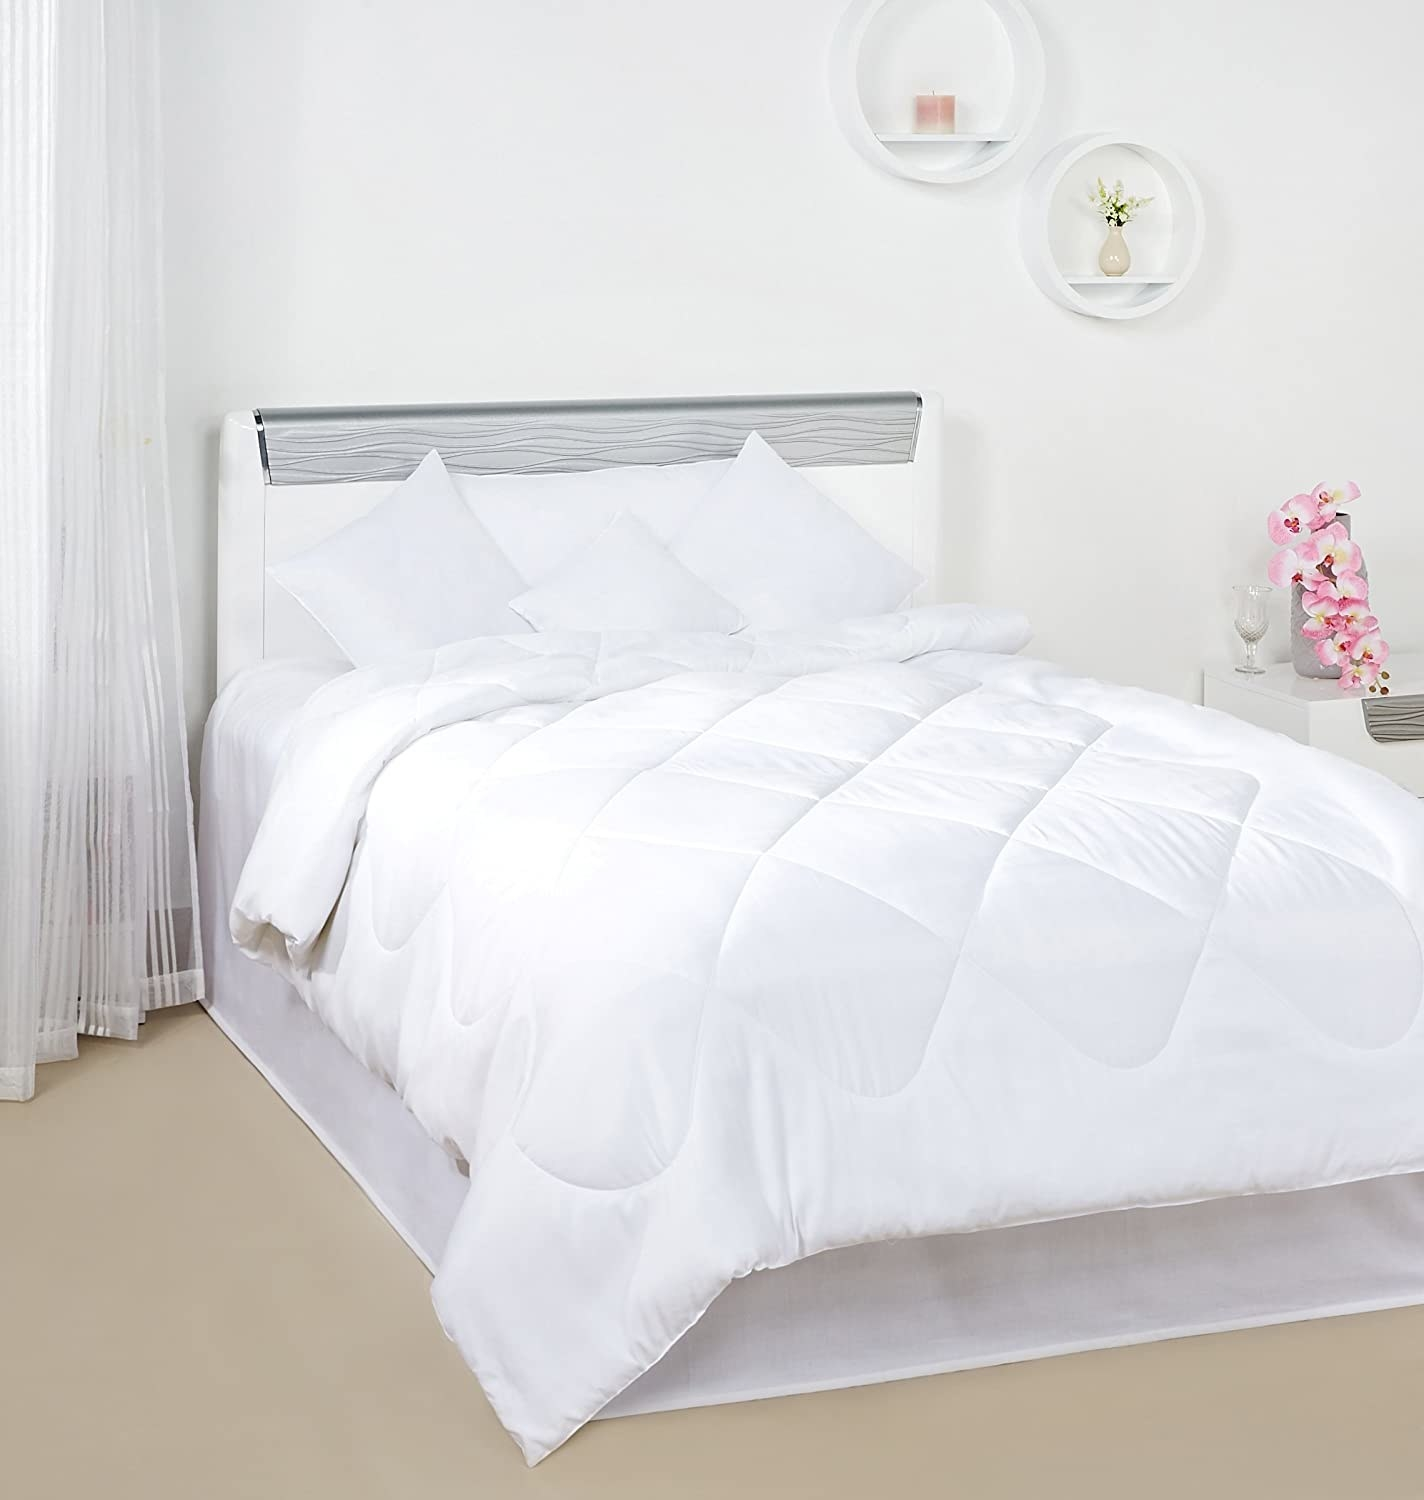 A white comforter spread out over a single bed